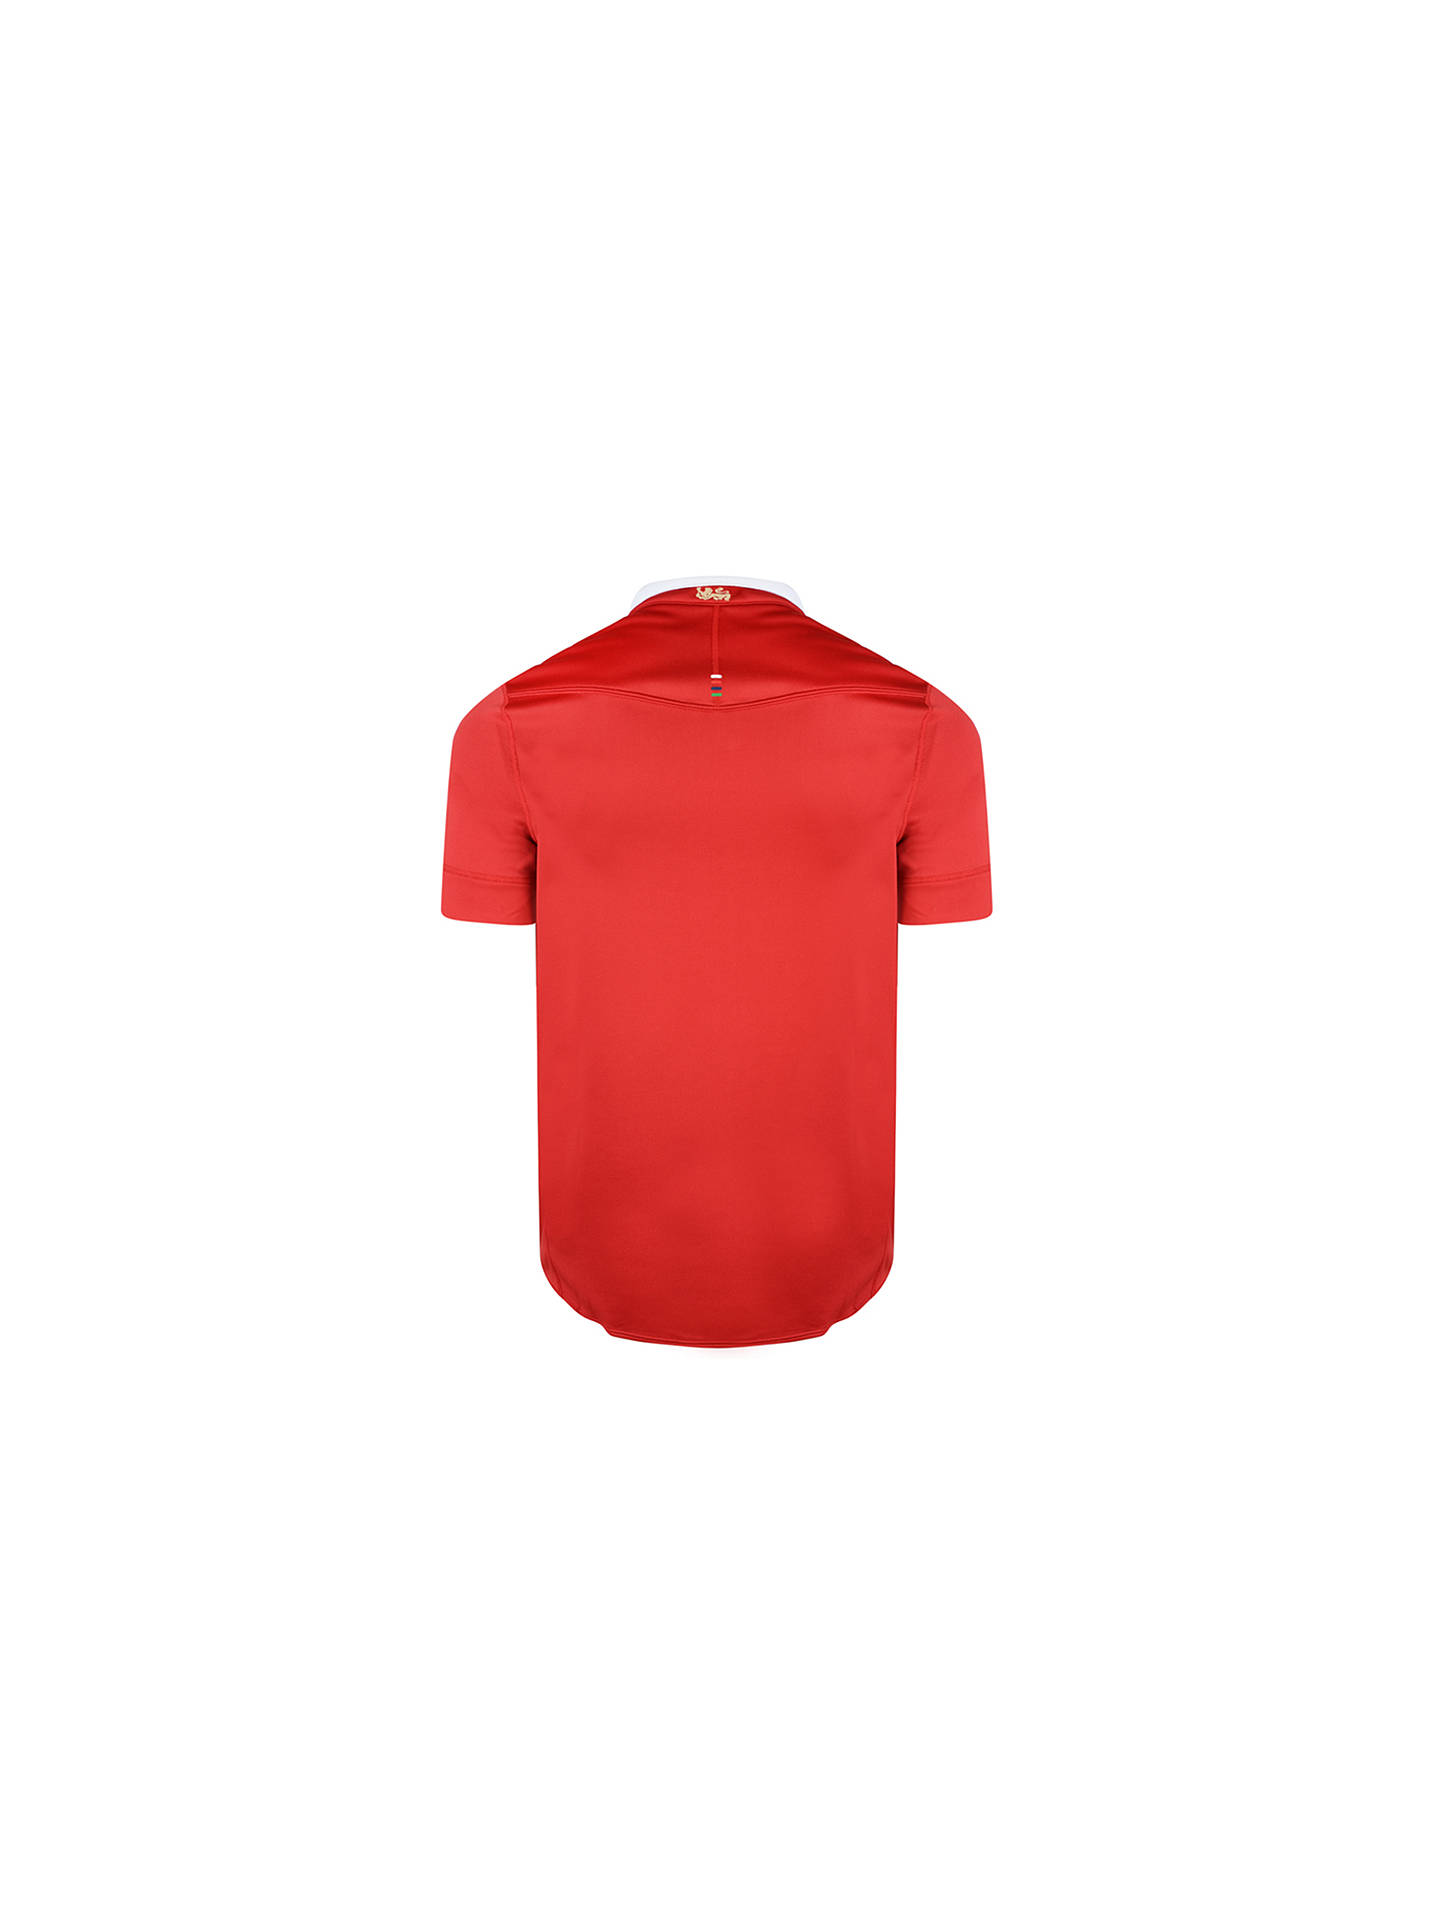 95e96c493f5 ... Buy Canterbury of New Zealand British and Irish Lions Match Day Pro  Rugby Shirt, Red ...